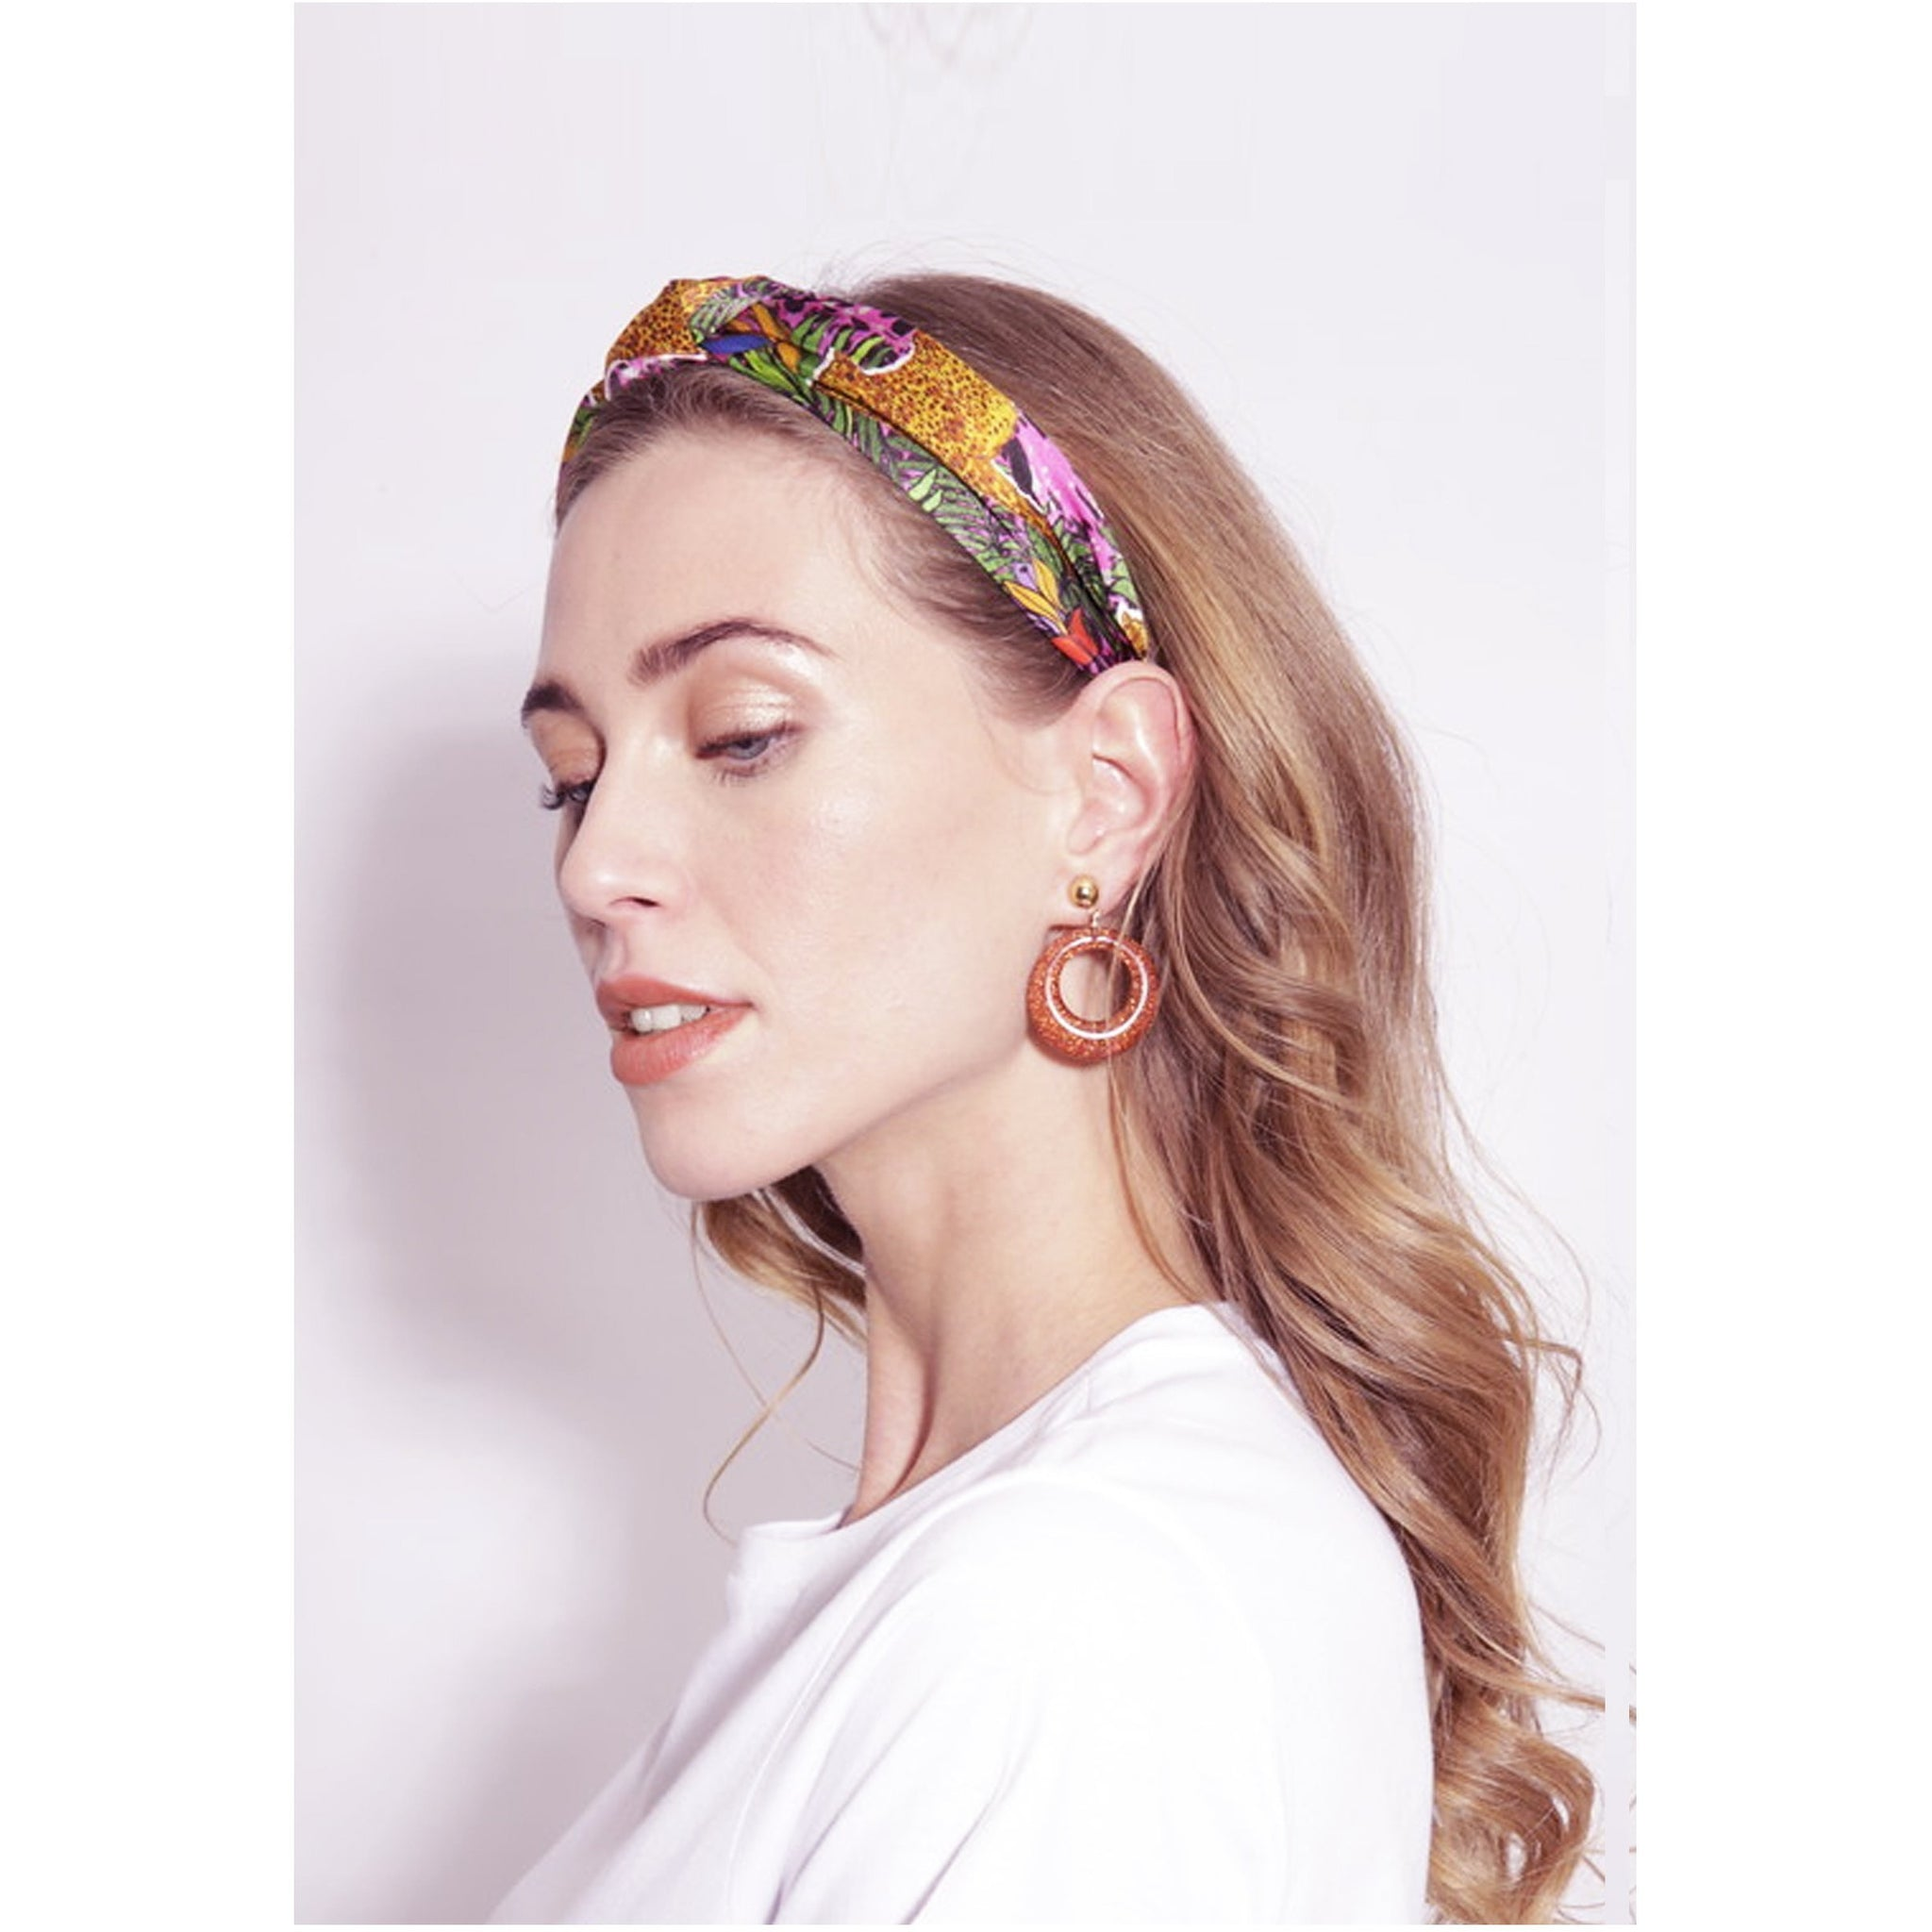 Jessica Russell Flint Silk Headband Luxury Hair Accessories Gift Gifting Ideas Spring Summer Colourful Leopard Print Hot Cheetah